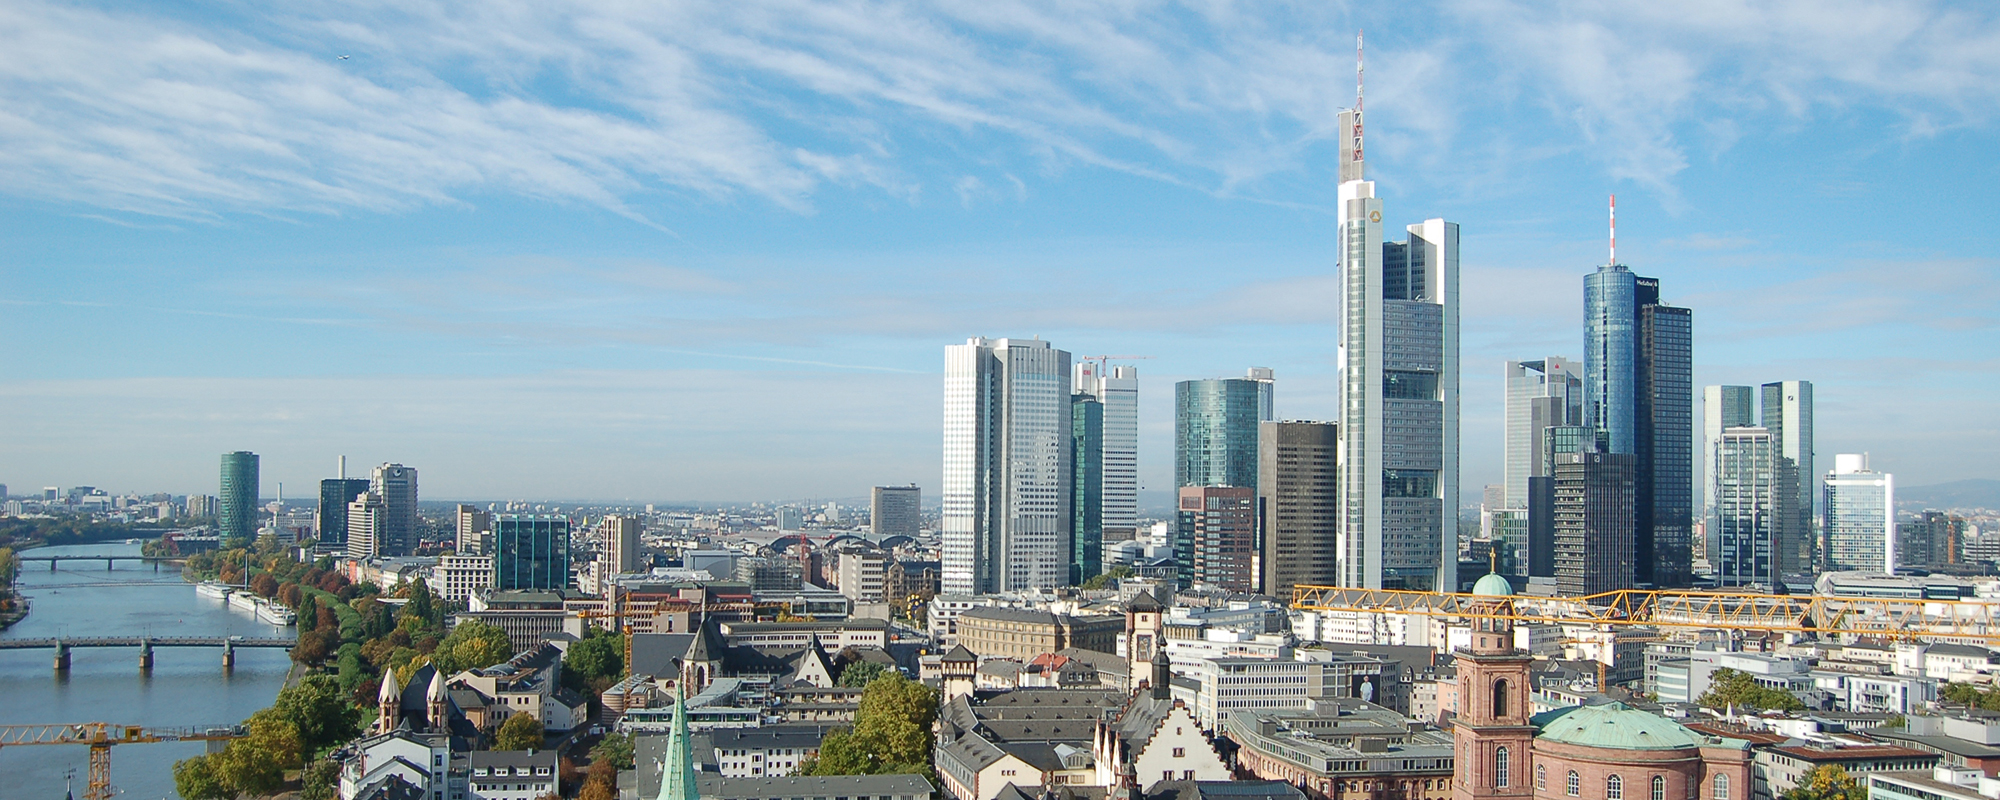 Panoramabild Skyline Frankfurt am Main